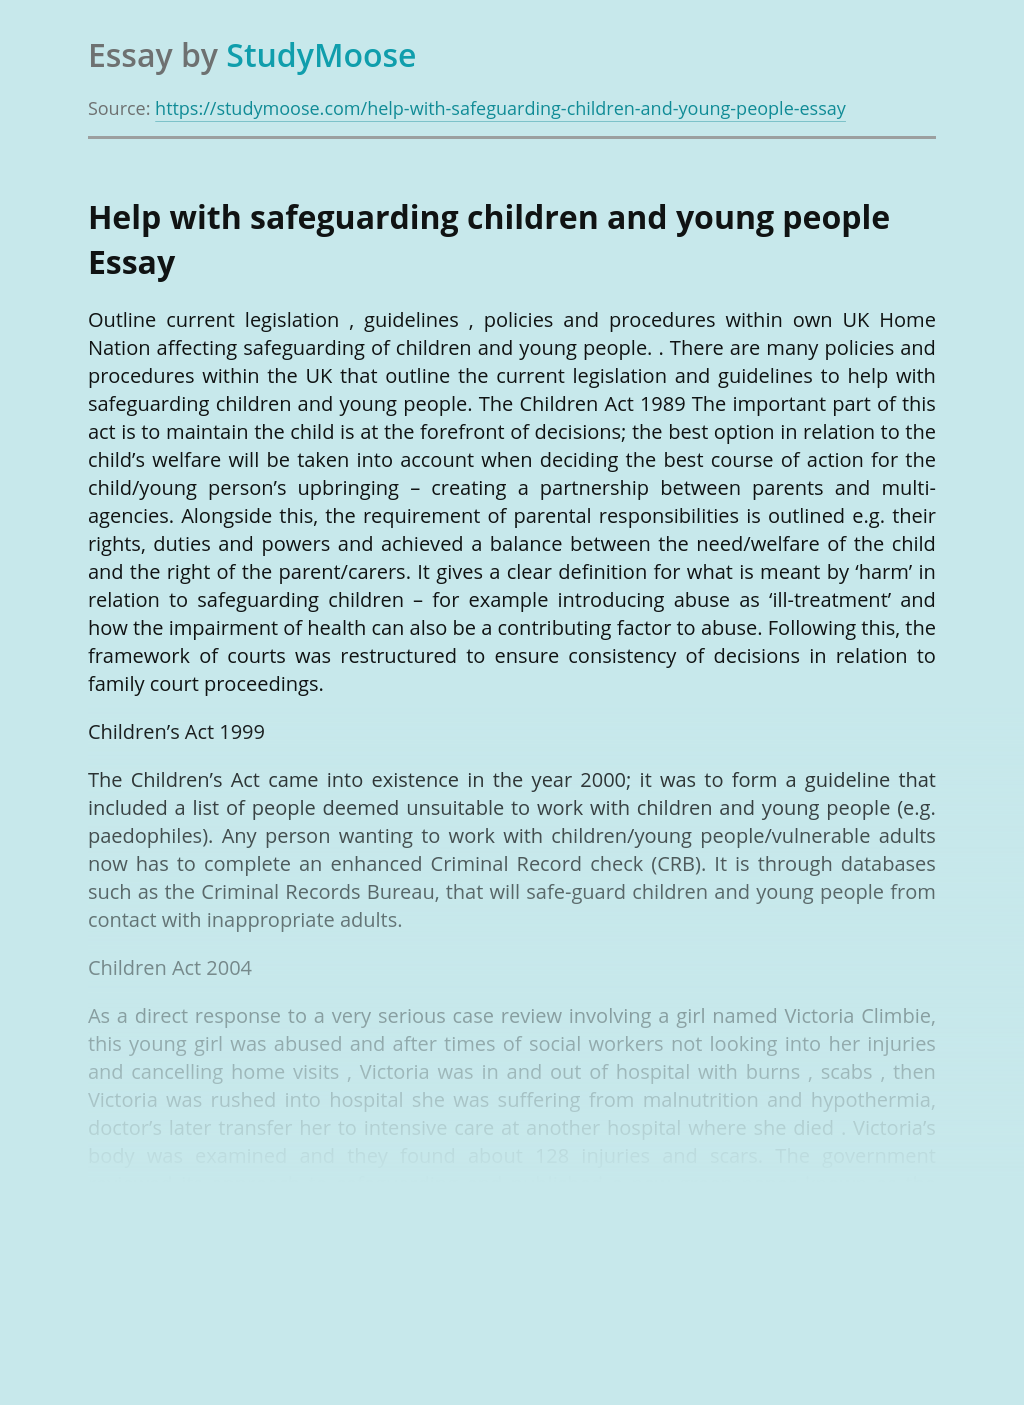 Help with safeguarding children and young people